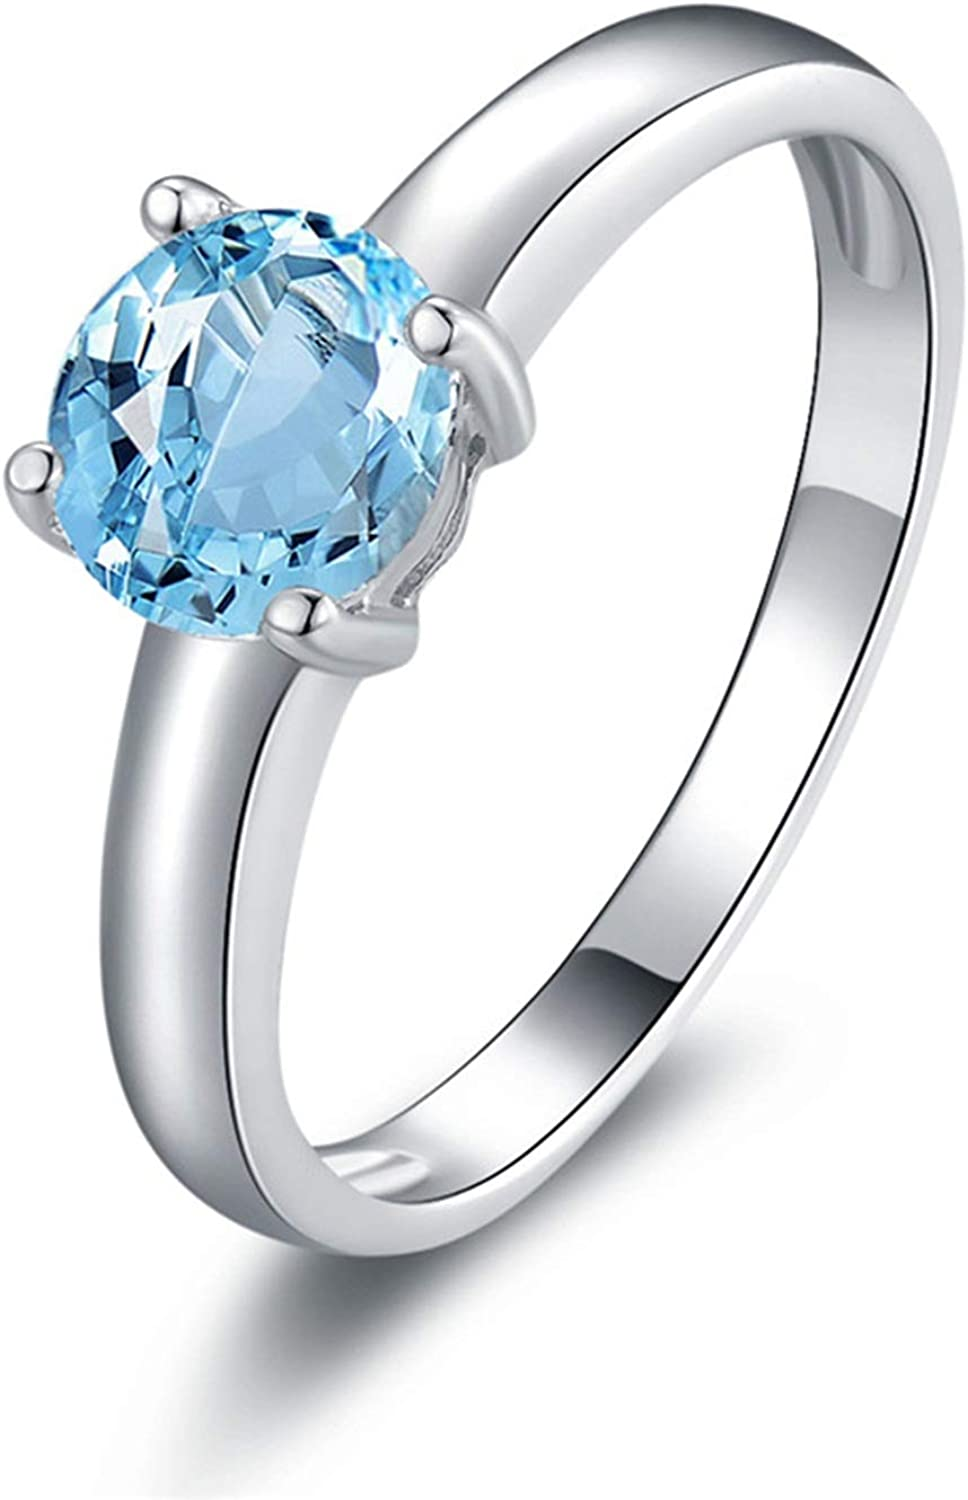 AMDXD Jewellery Sterling Silver Engagement Ring for Women Blue Round Cut Topaz Round Rings